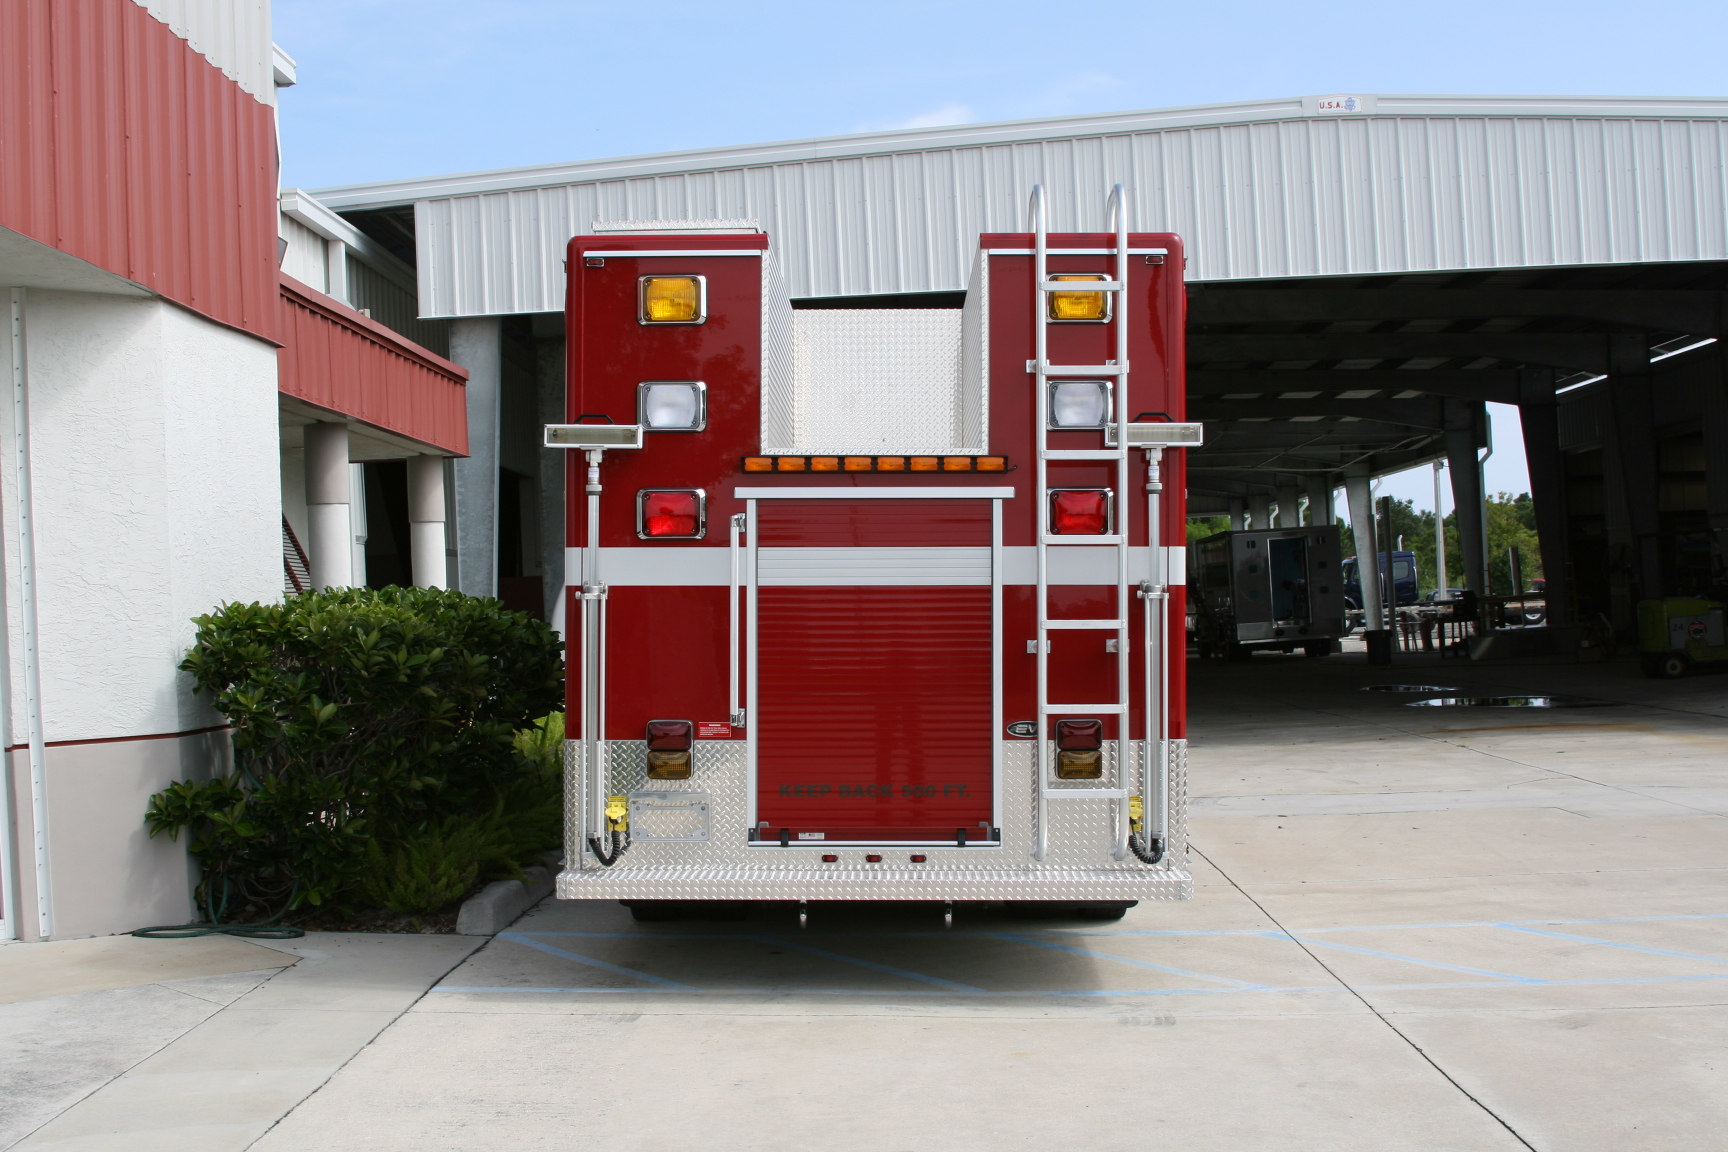 19-Ft. Crew Body Rescue Truck